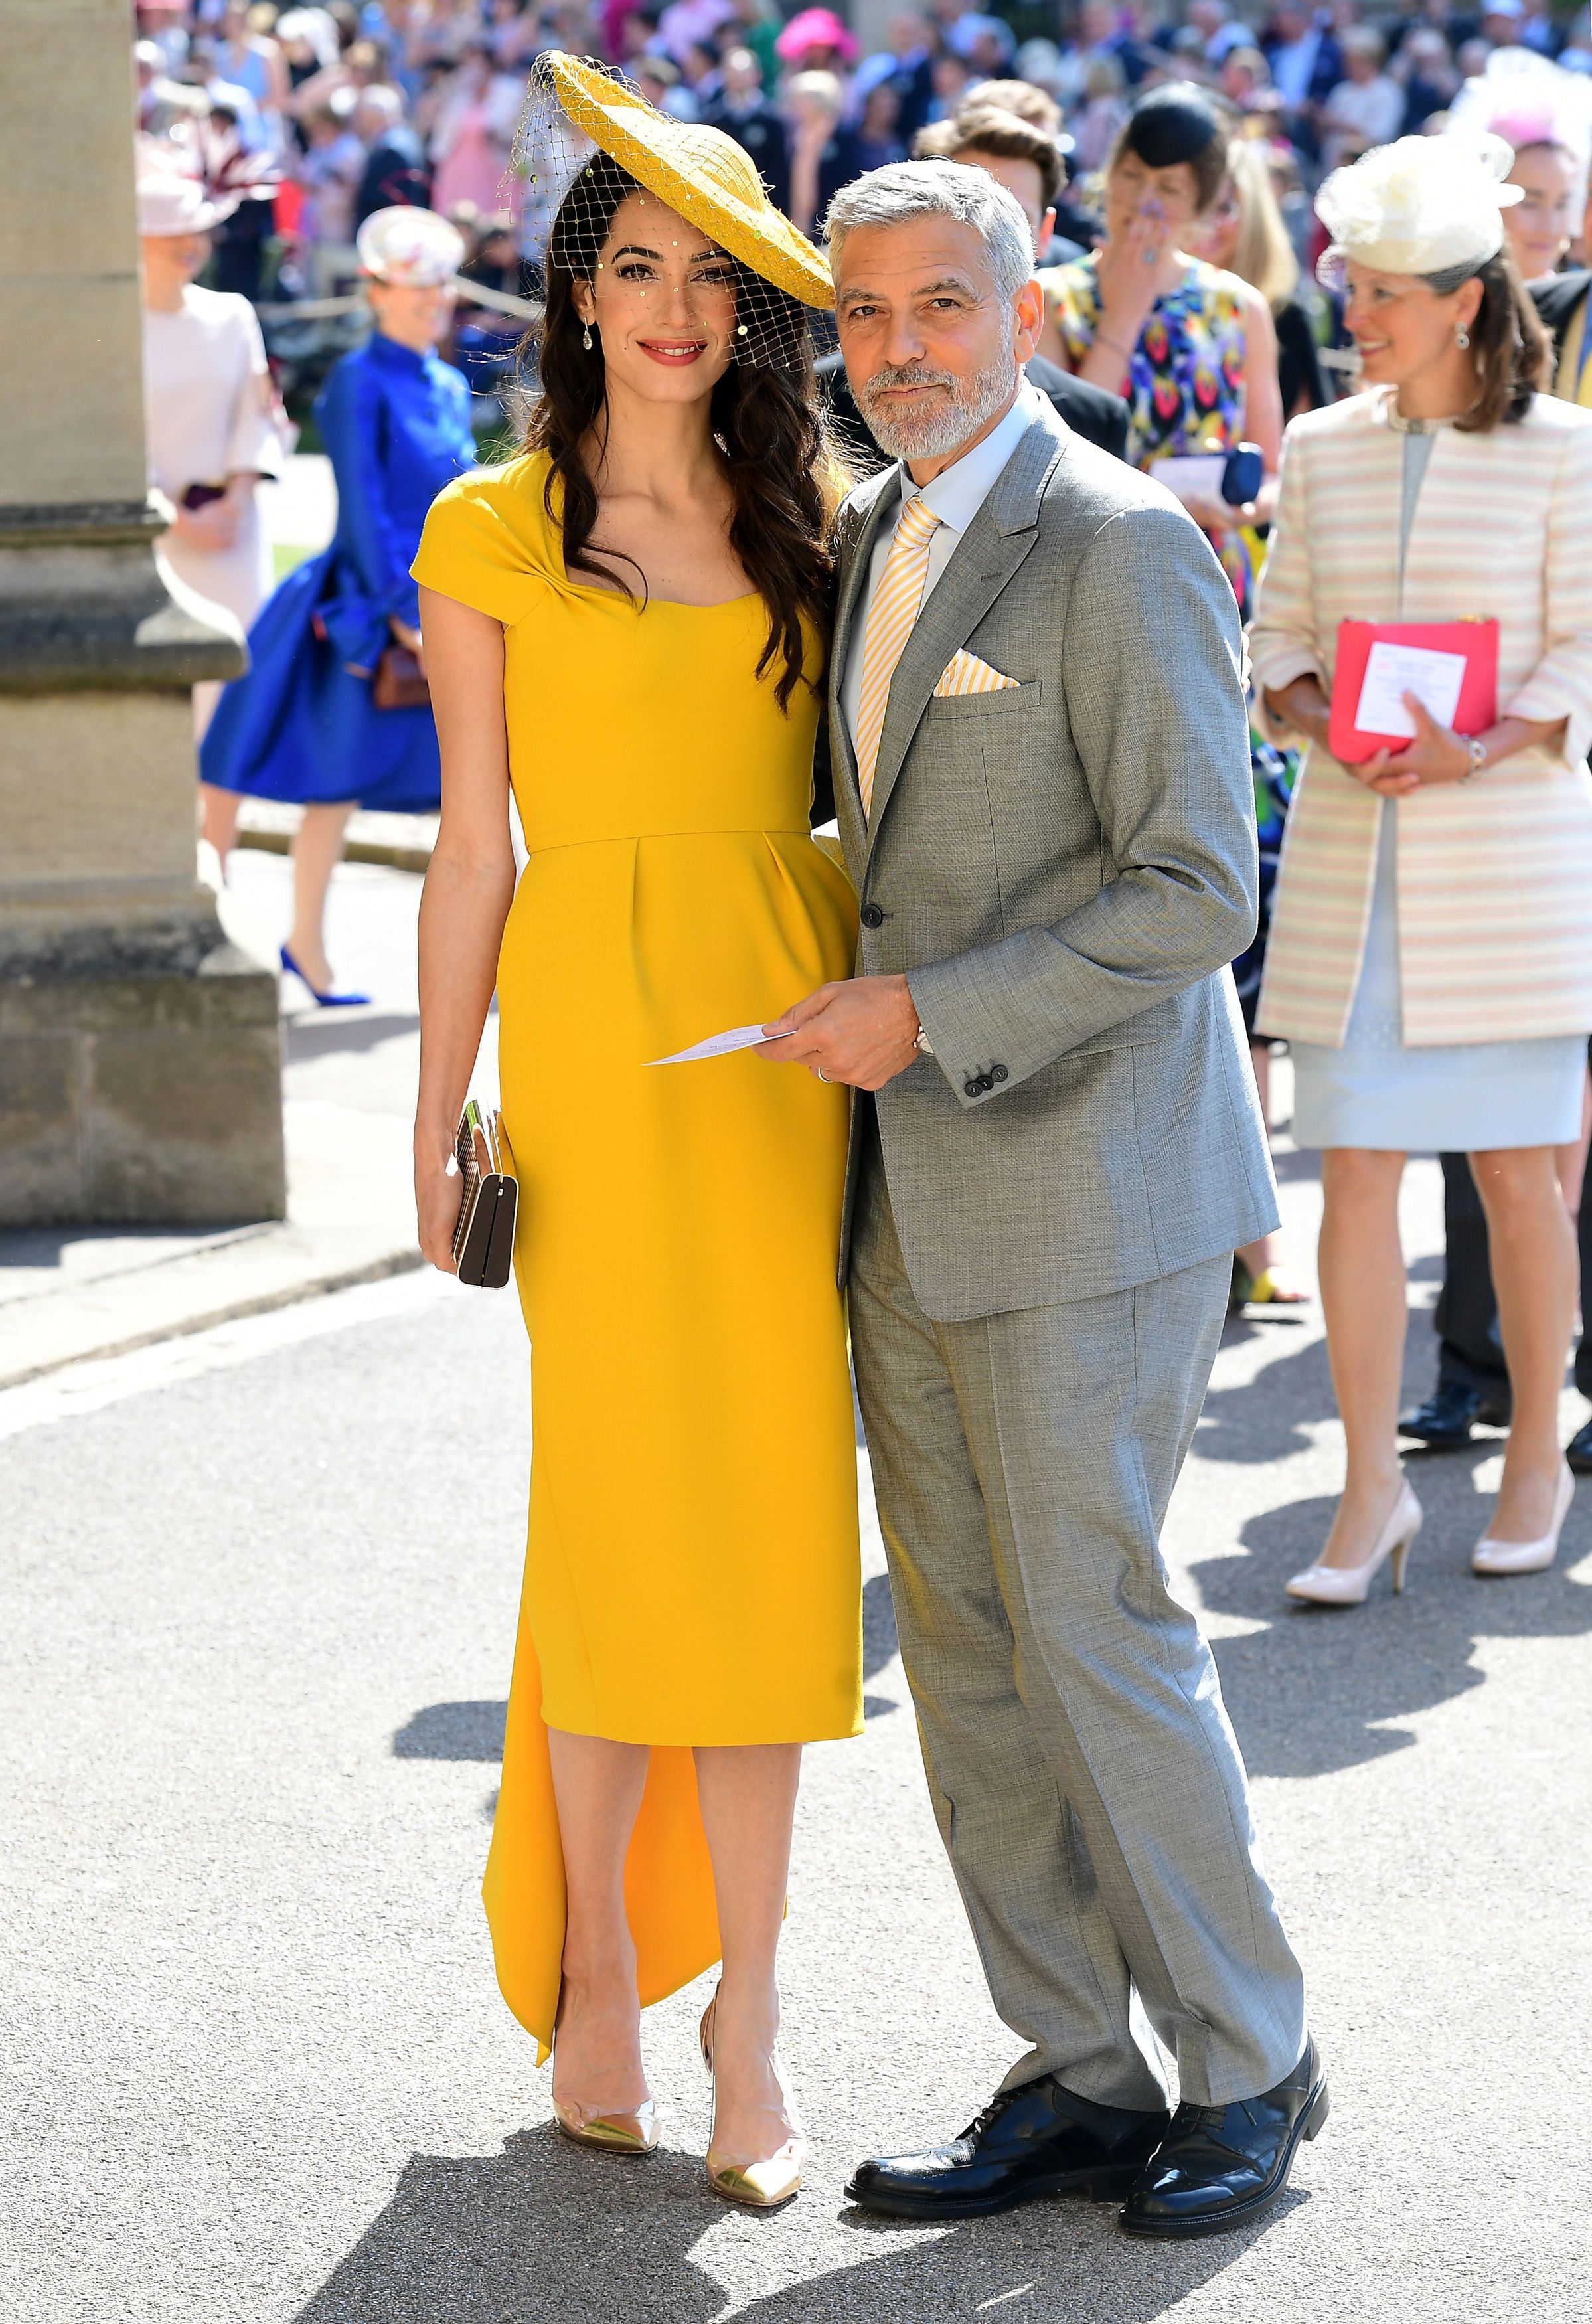 Amal wears a honey yellow midi dress with side drape detail in silk by Stella McCartney with a head dress by Stephen Jones. George is dressed in a light gray lounge suit with a striped tie and pocket square.